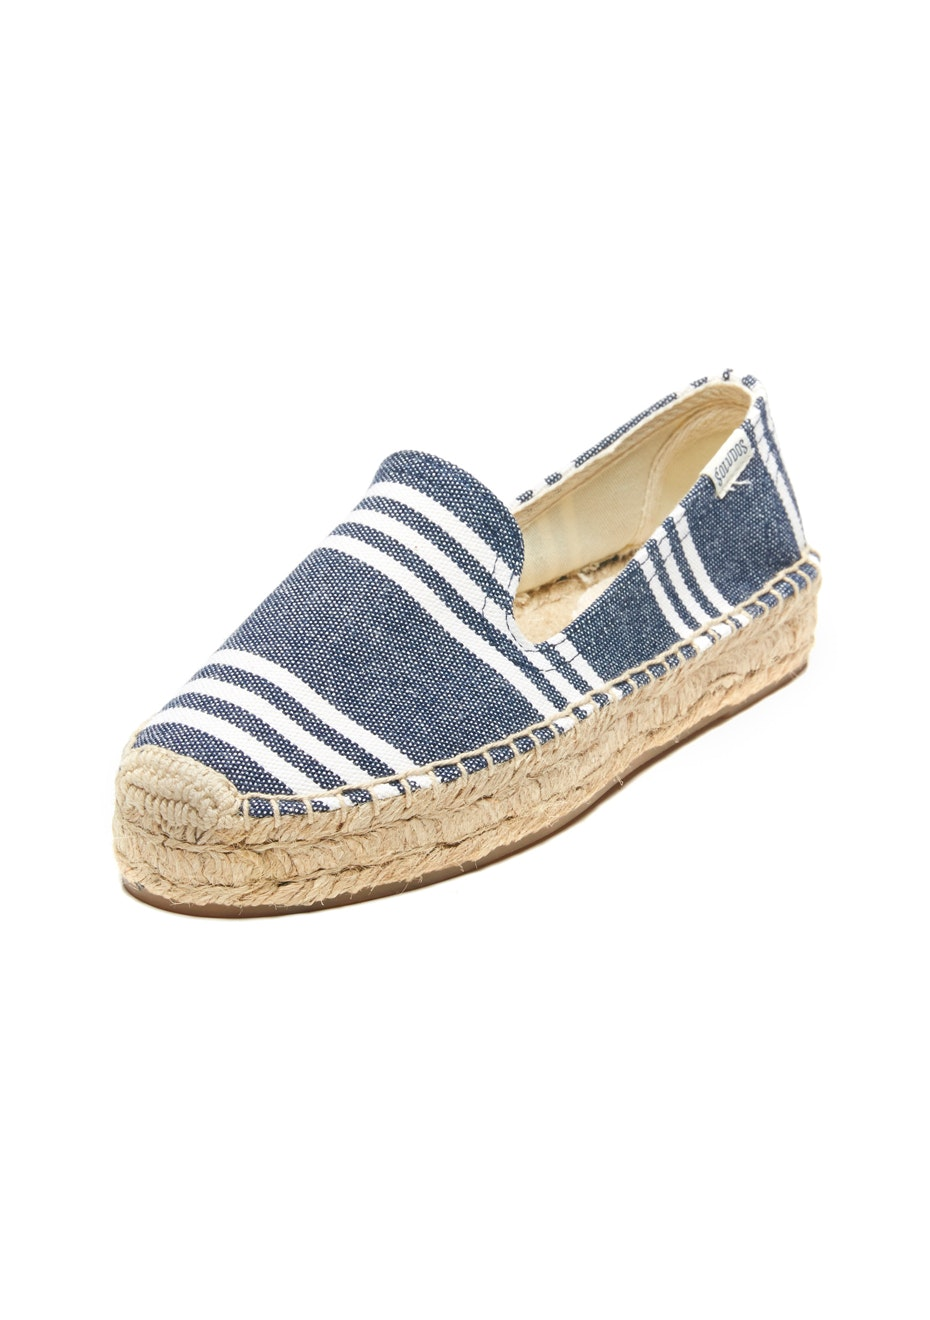 Soludos - Platform Smoking Slipper Stripe - Navy/White